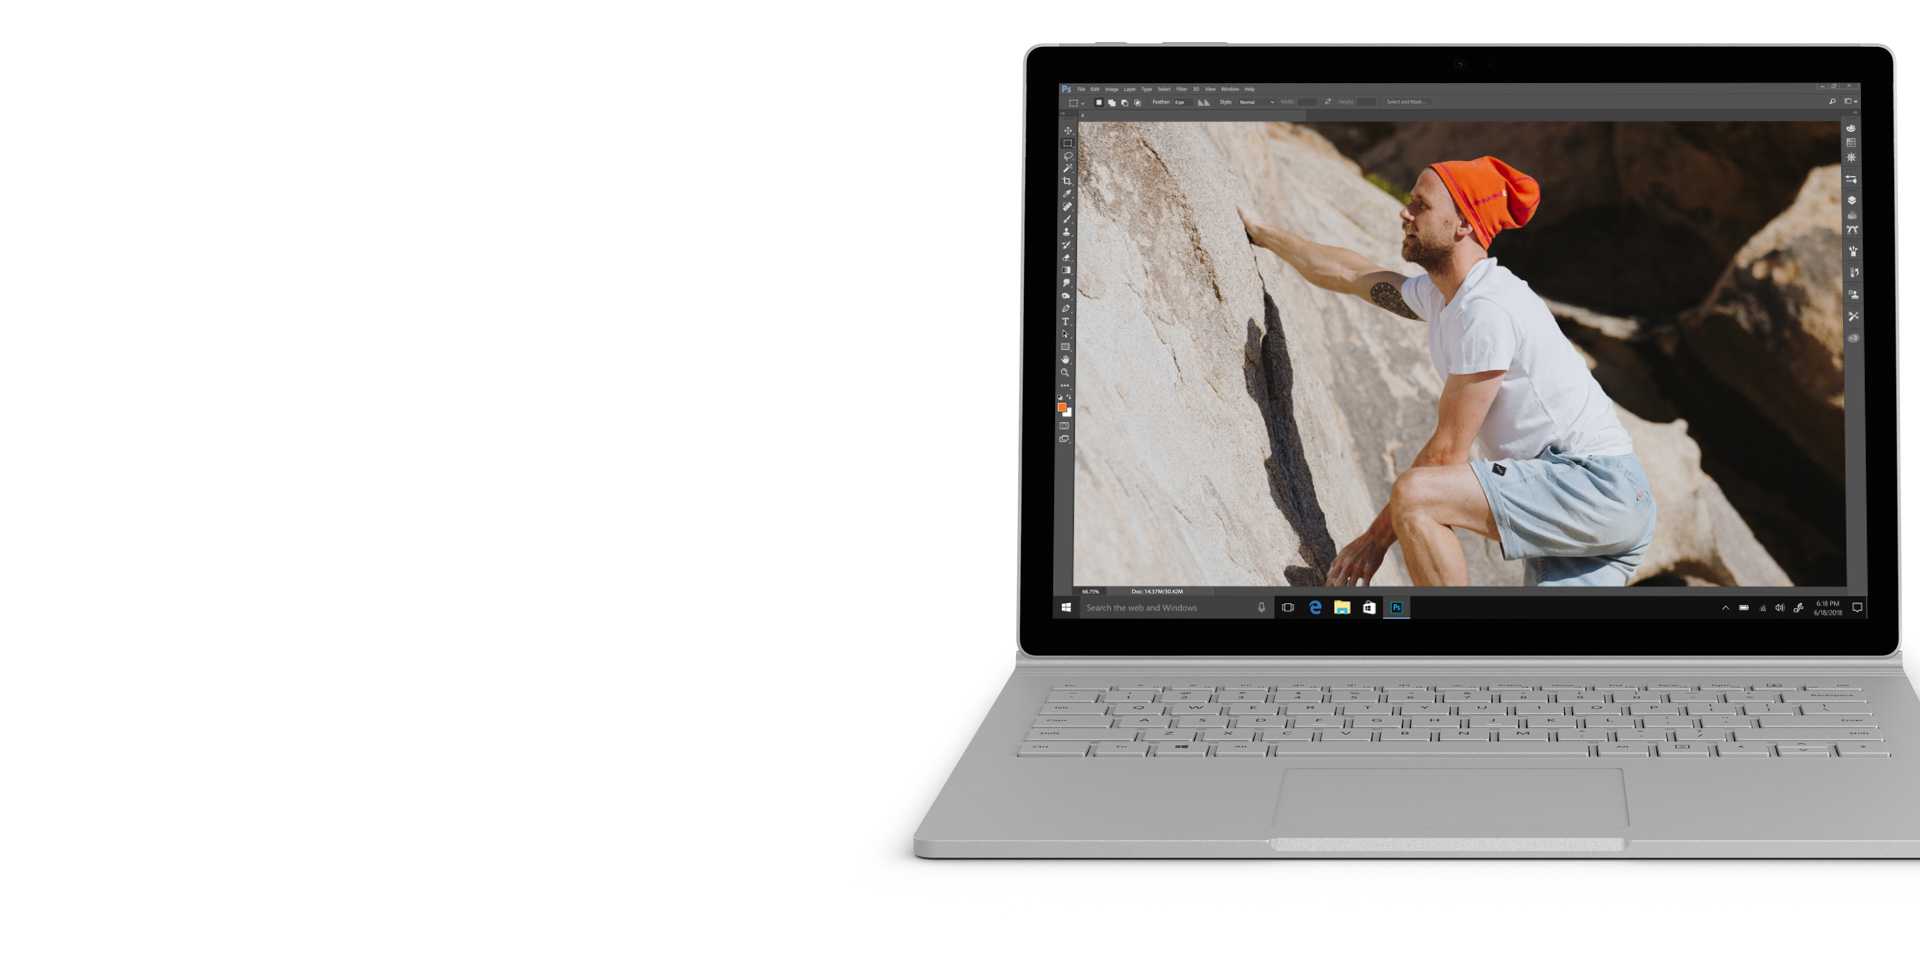 Adobe Photoshop on a Surface Book 2 display